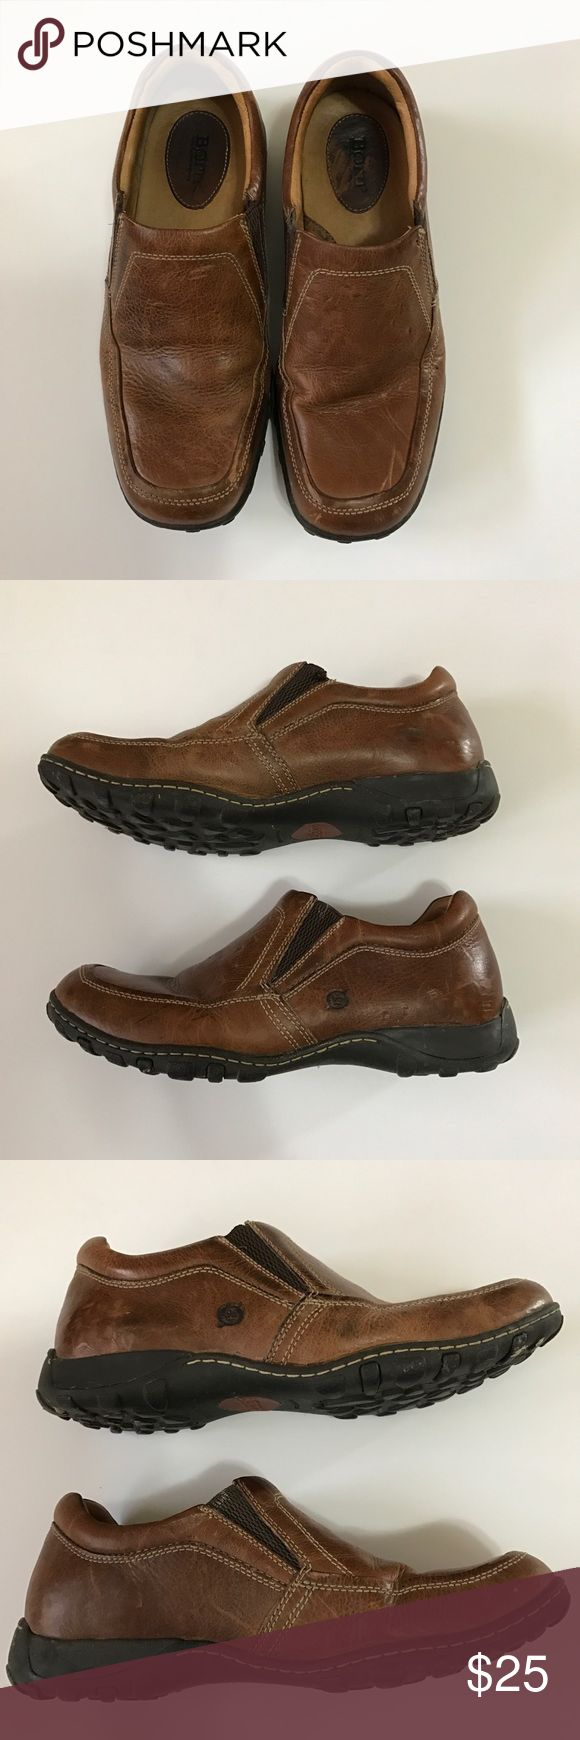 Born shoes Born shoes in brown. Do have scuffs on top, inside and around. Born Shoes Loafers & Slip-Ons